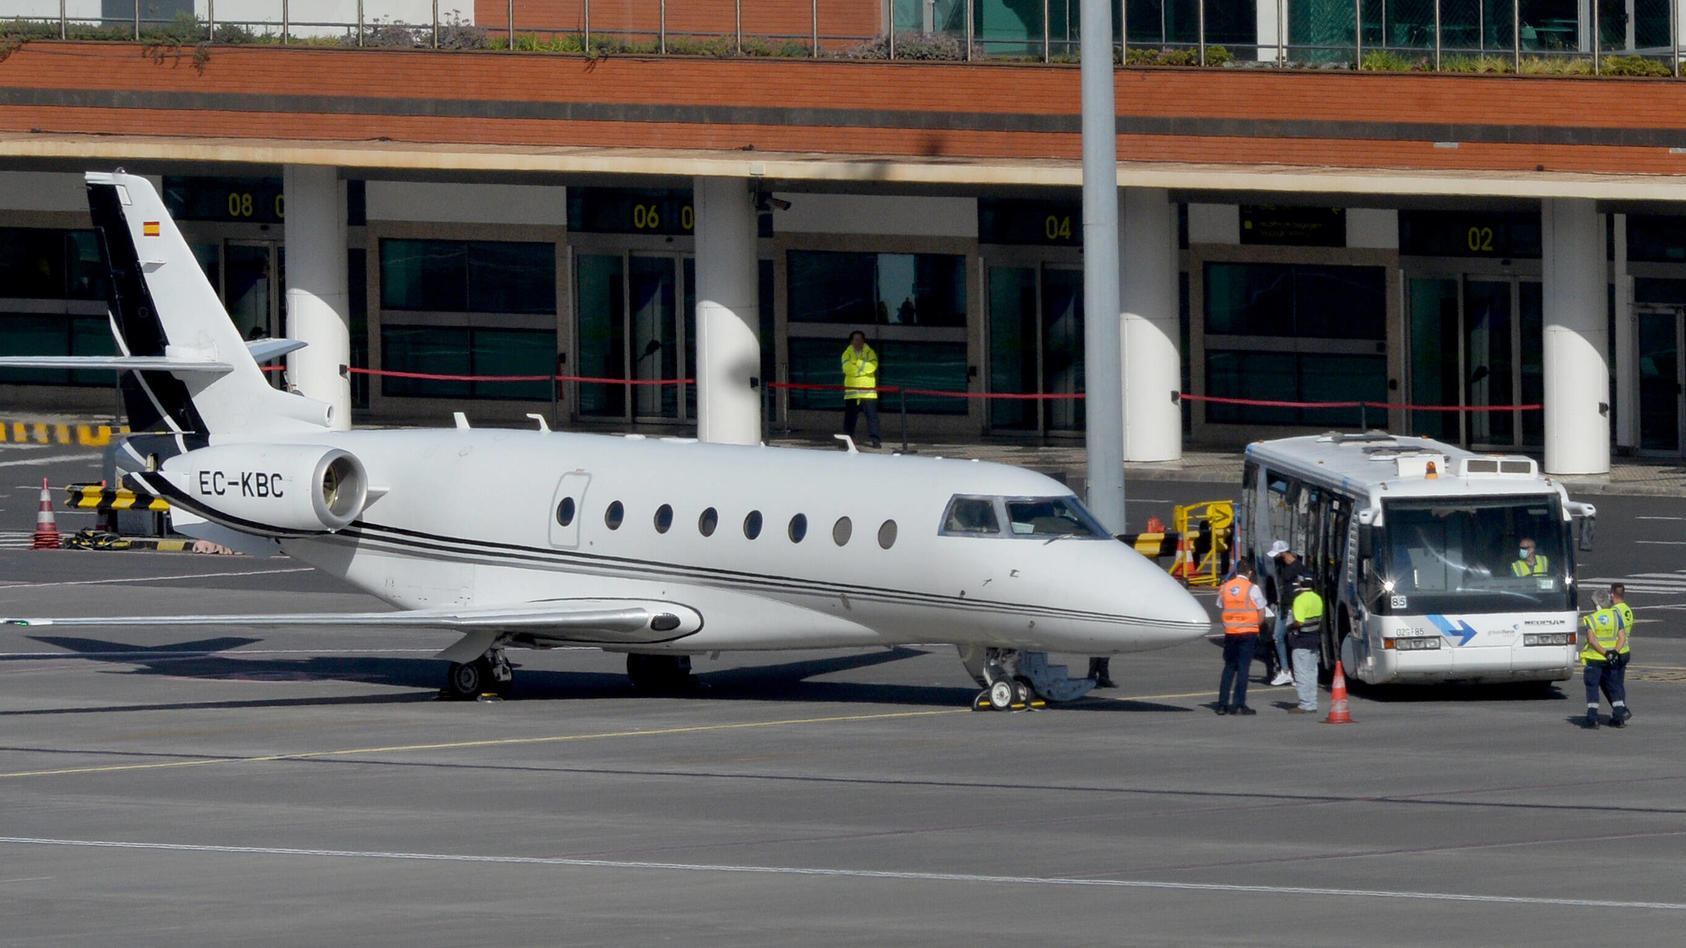 Cristiano Ronaldo leaves Madeira CR7 Leaves the region with his family and two nurses to Torino from Madeira airport in